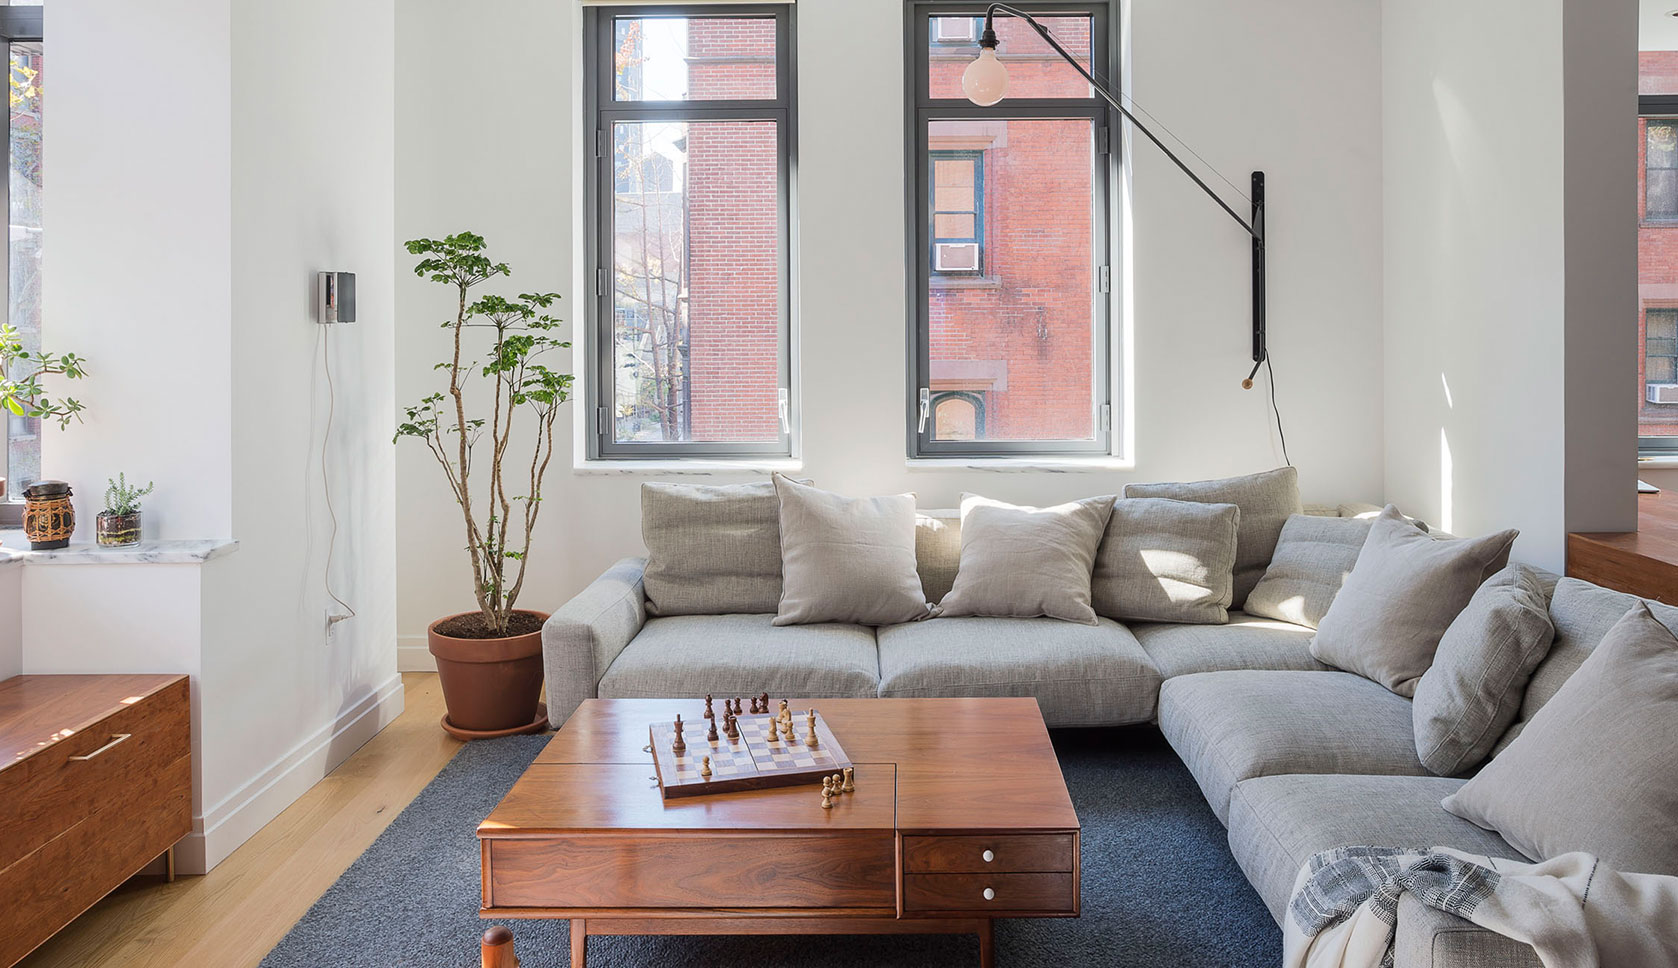 Home Tours October 2 2017 A Modern Apartment In New York Citys Gallery District